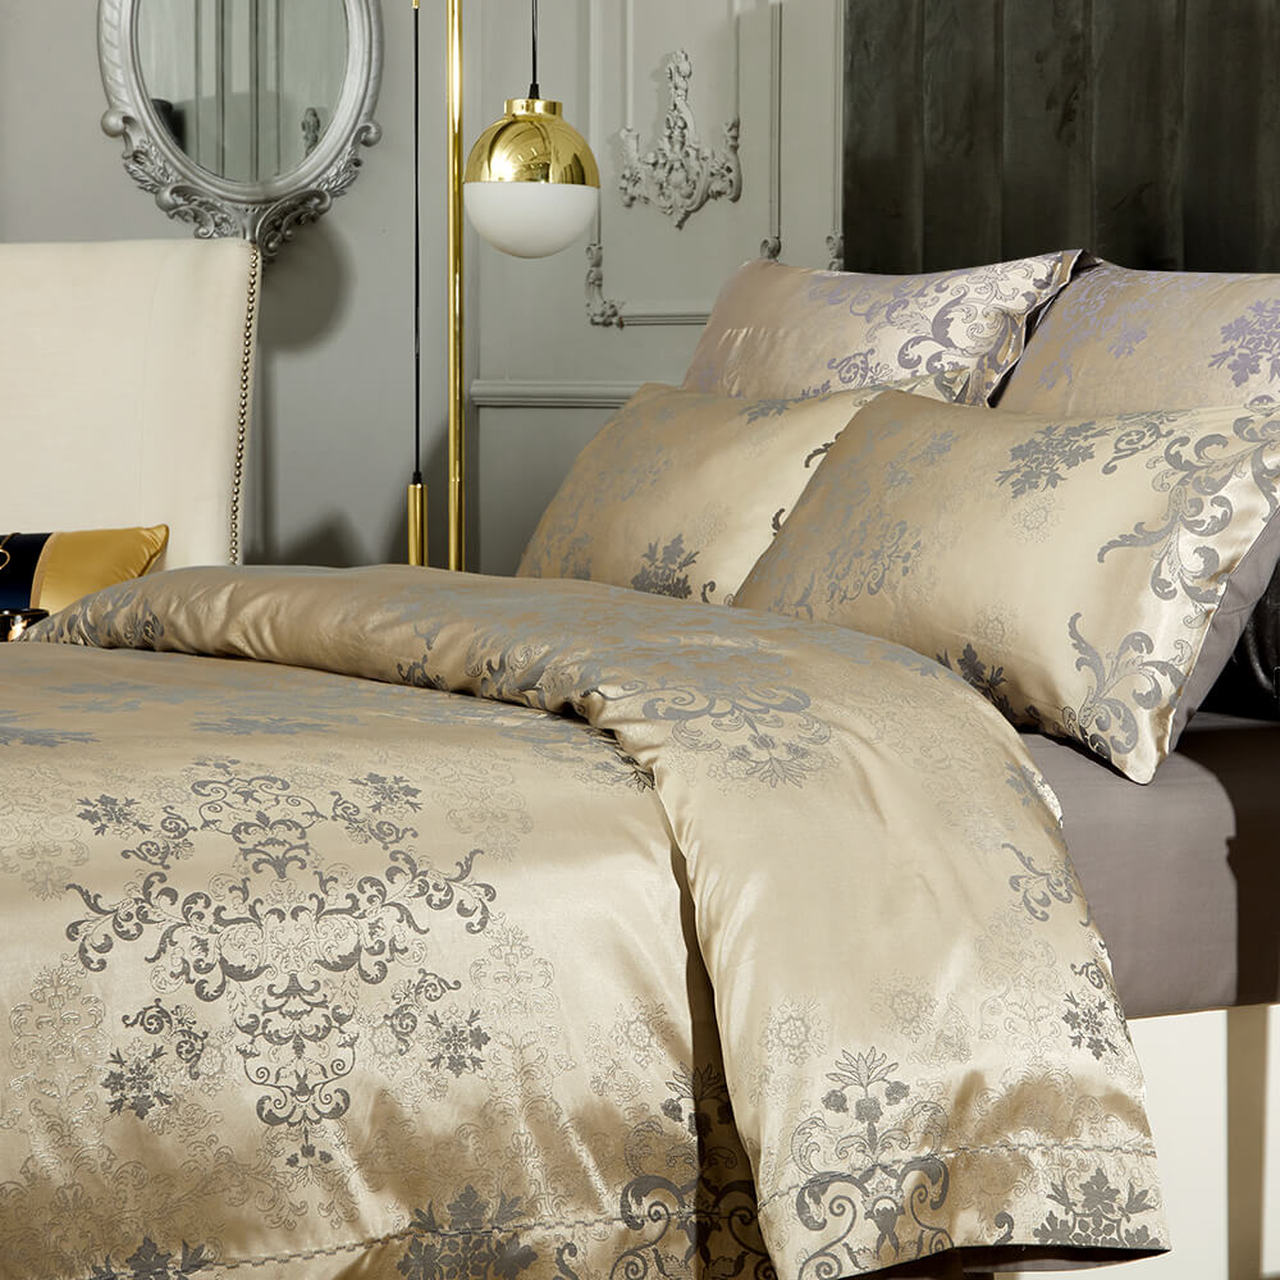 Beige Jacquard Luxury Duvet Cover Bedding Set